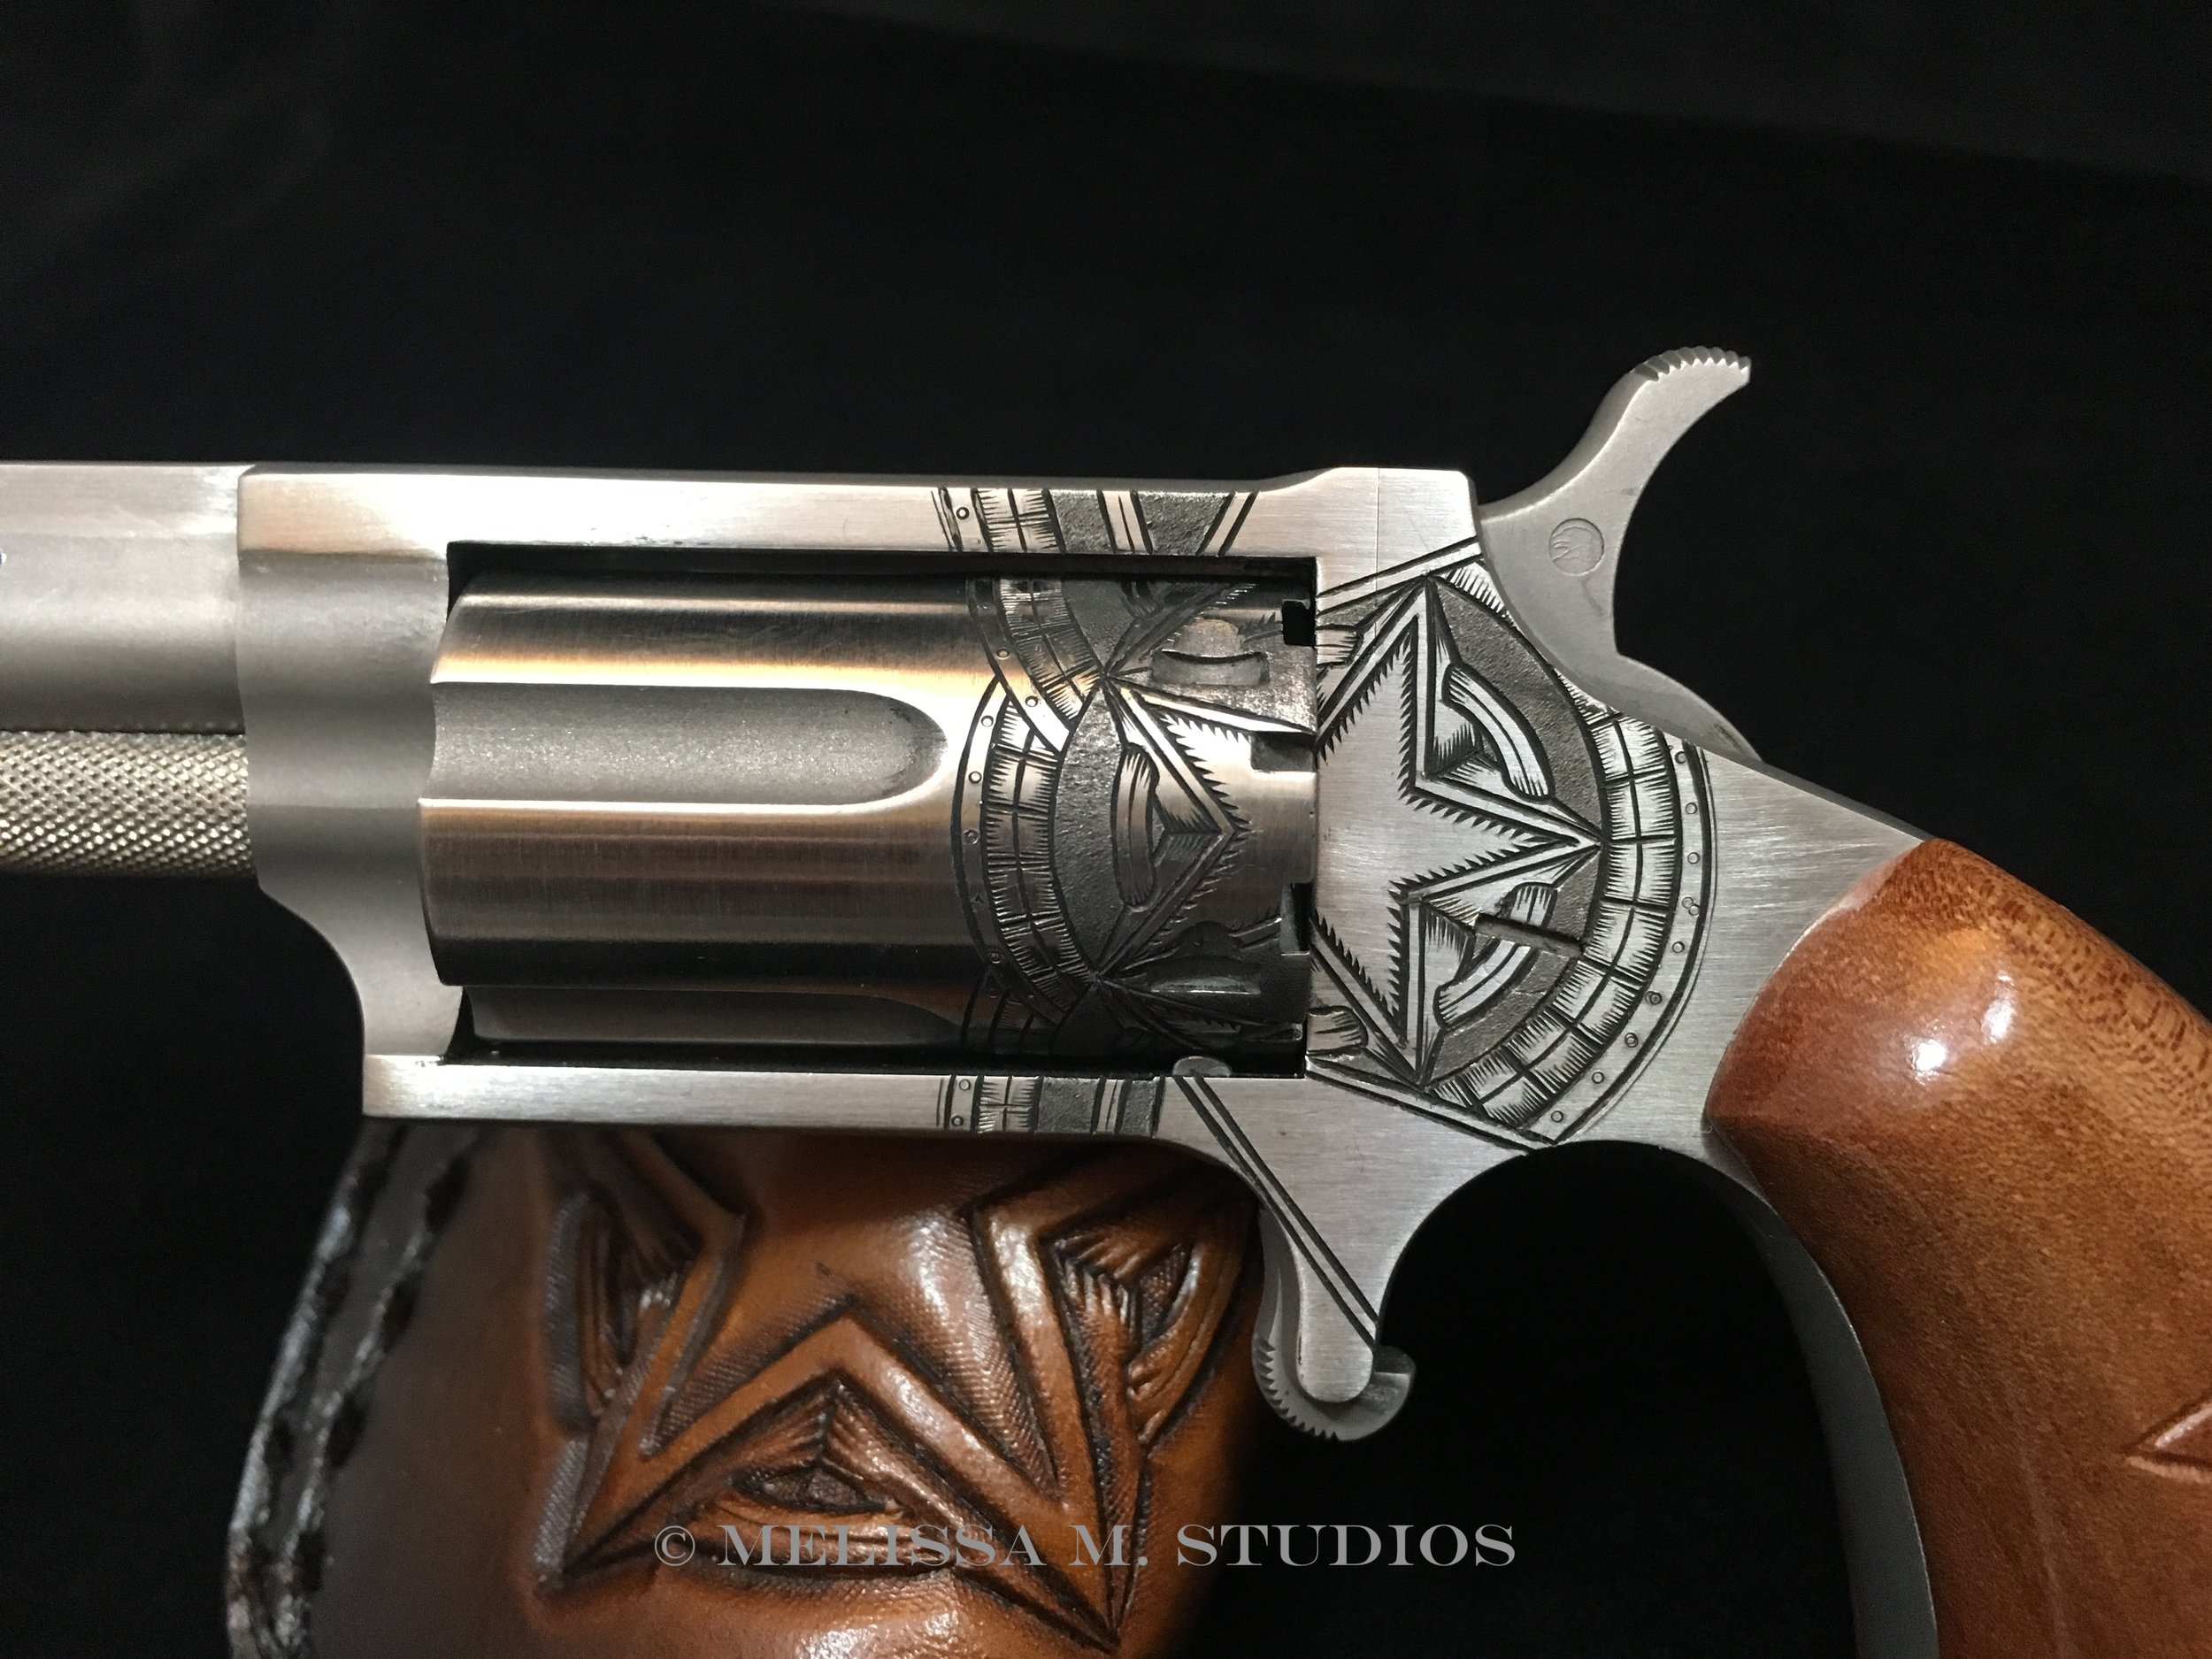 North American Arms .22 Magnum | Engraved Pistol